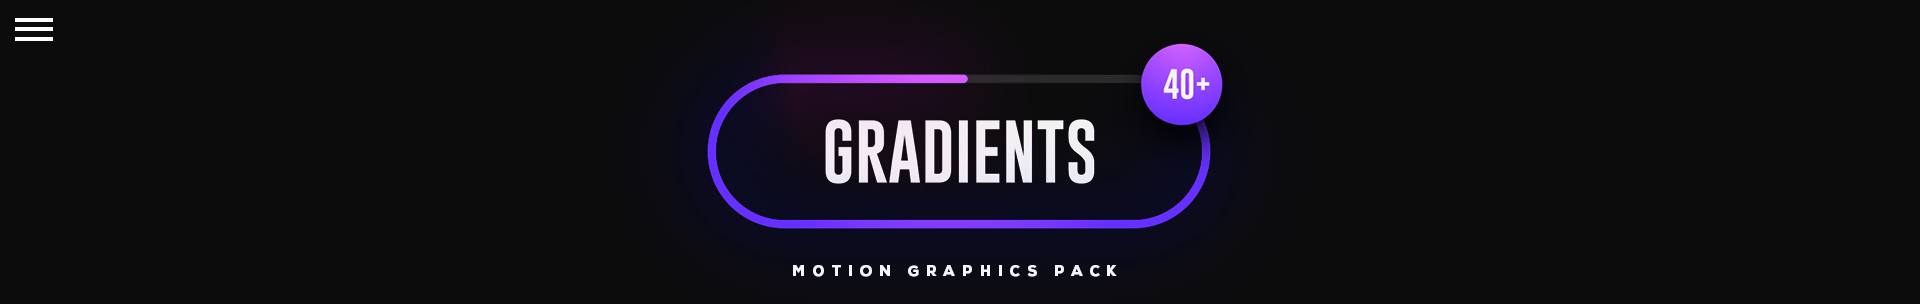 Motion Graphics Pack V2 - 20